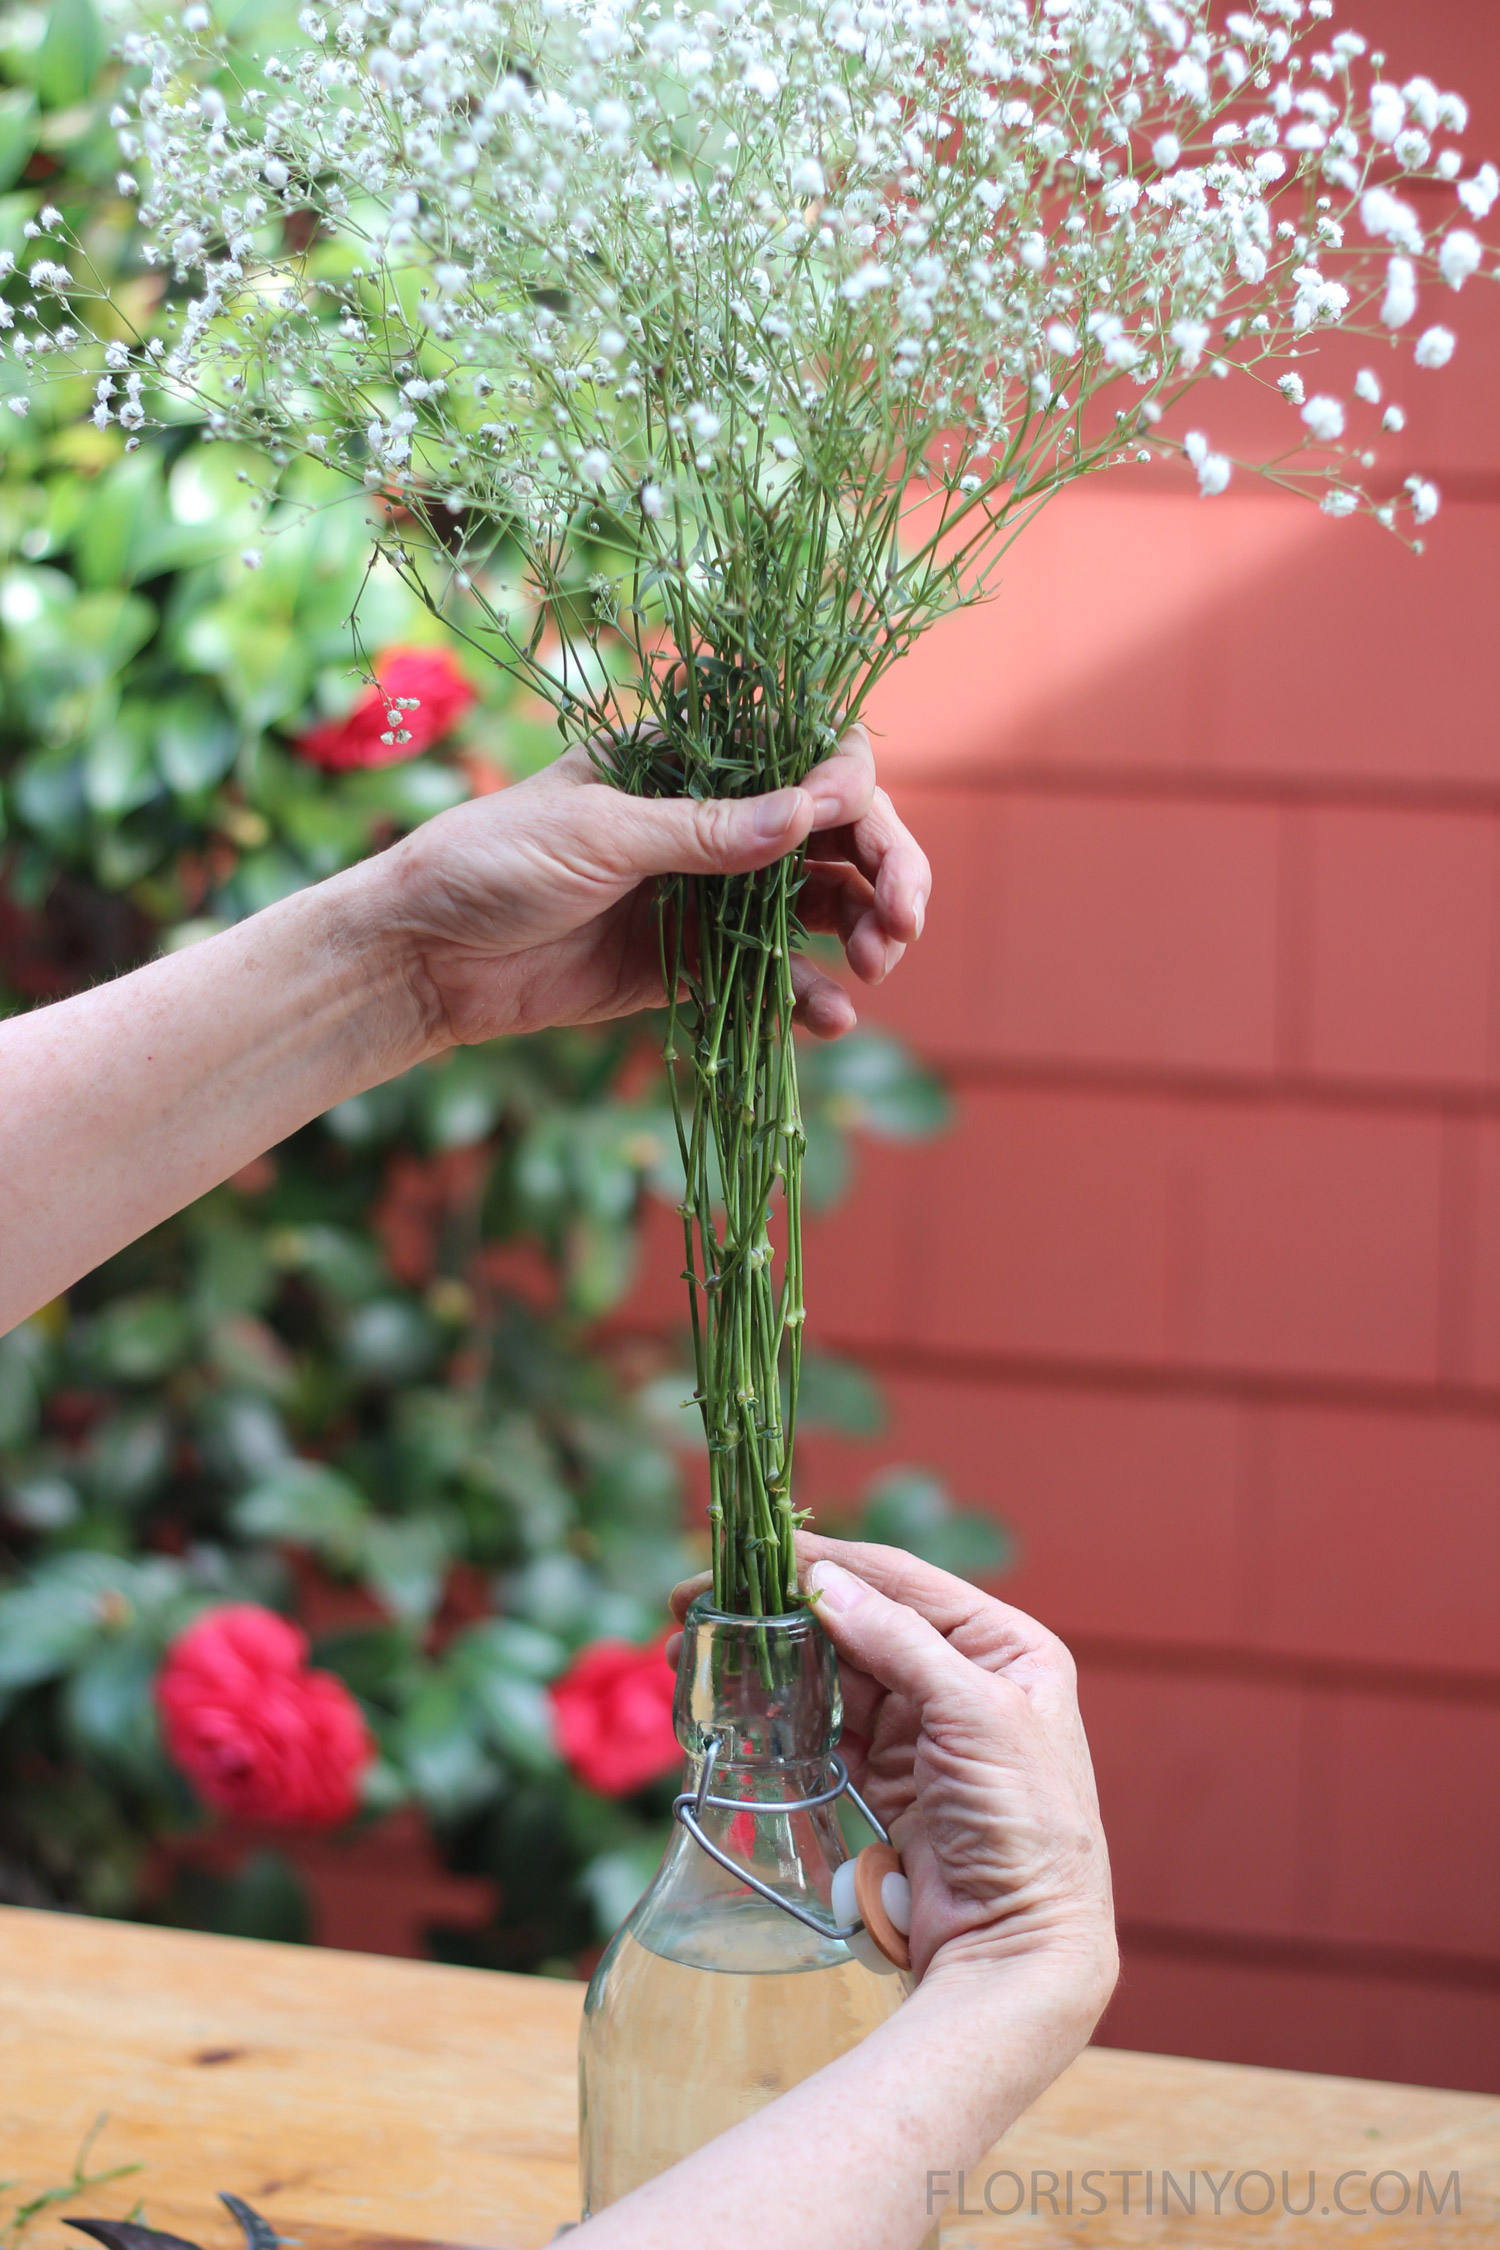 Hold stems together and guide through neck of bottle.